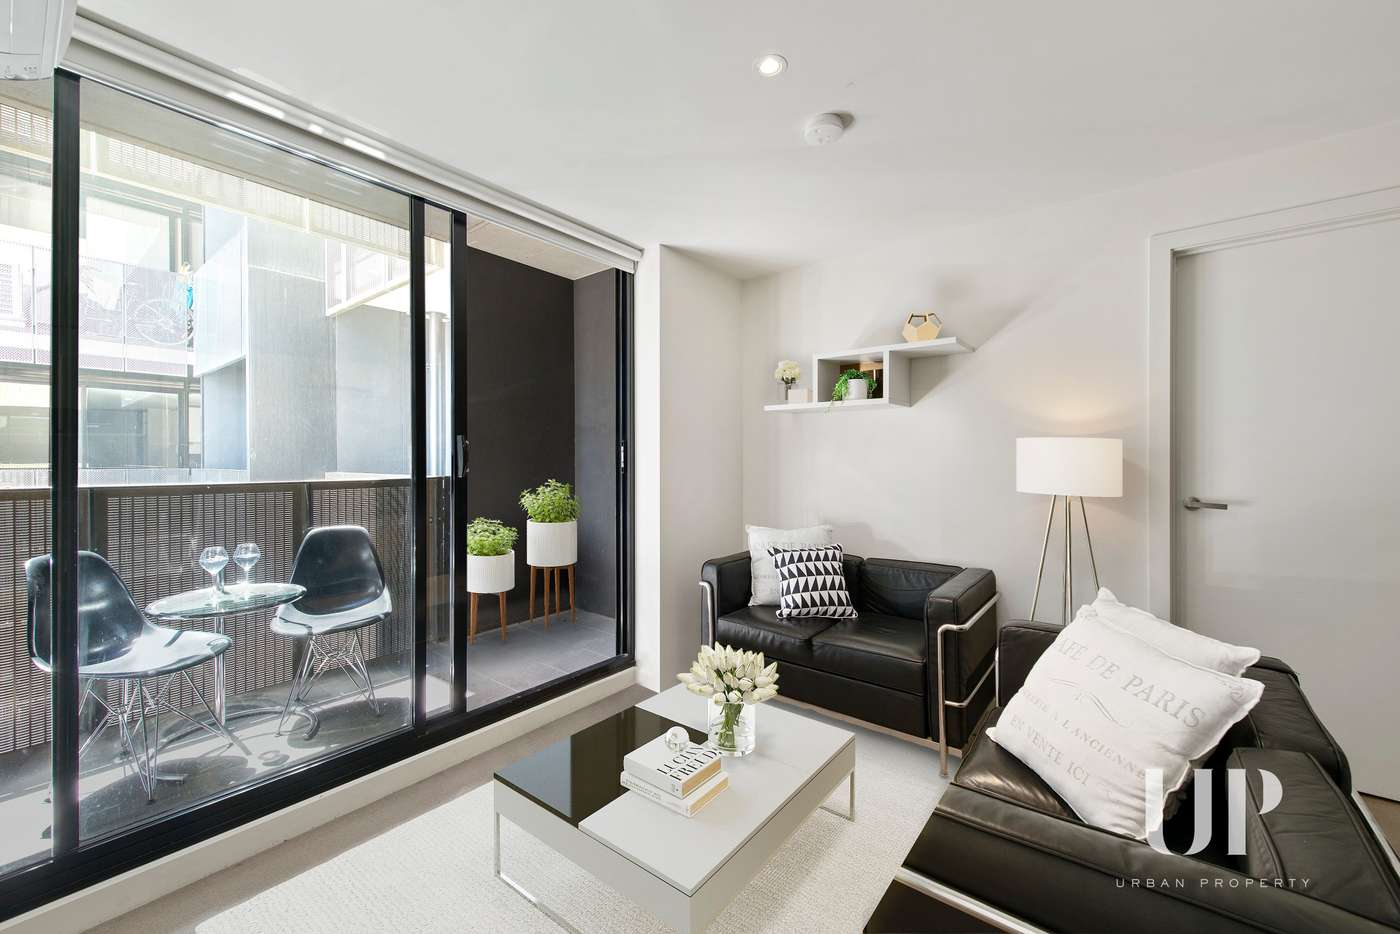 Main view of Homely apartment listing, 104/243 Franklin Street, Melbourne VIC 3000